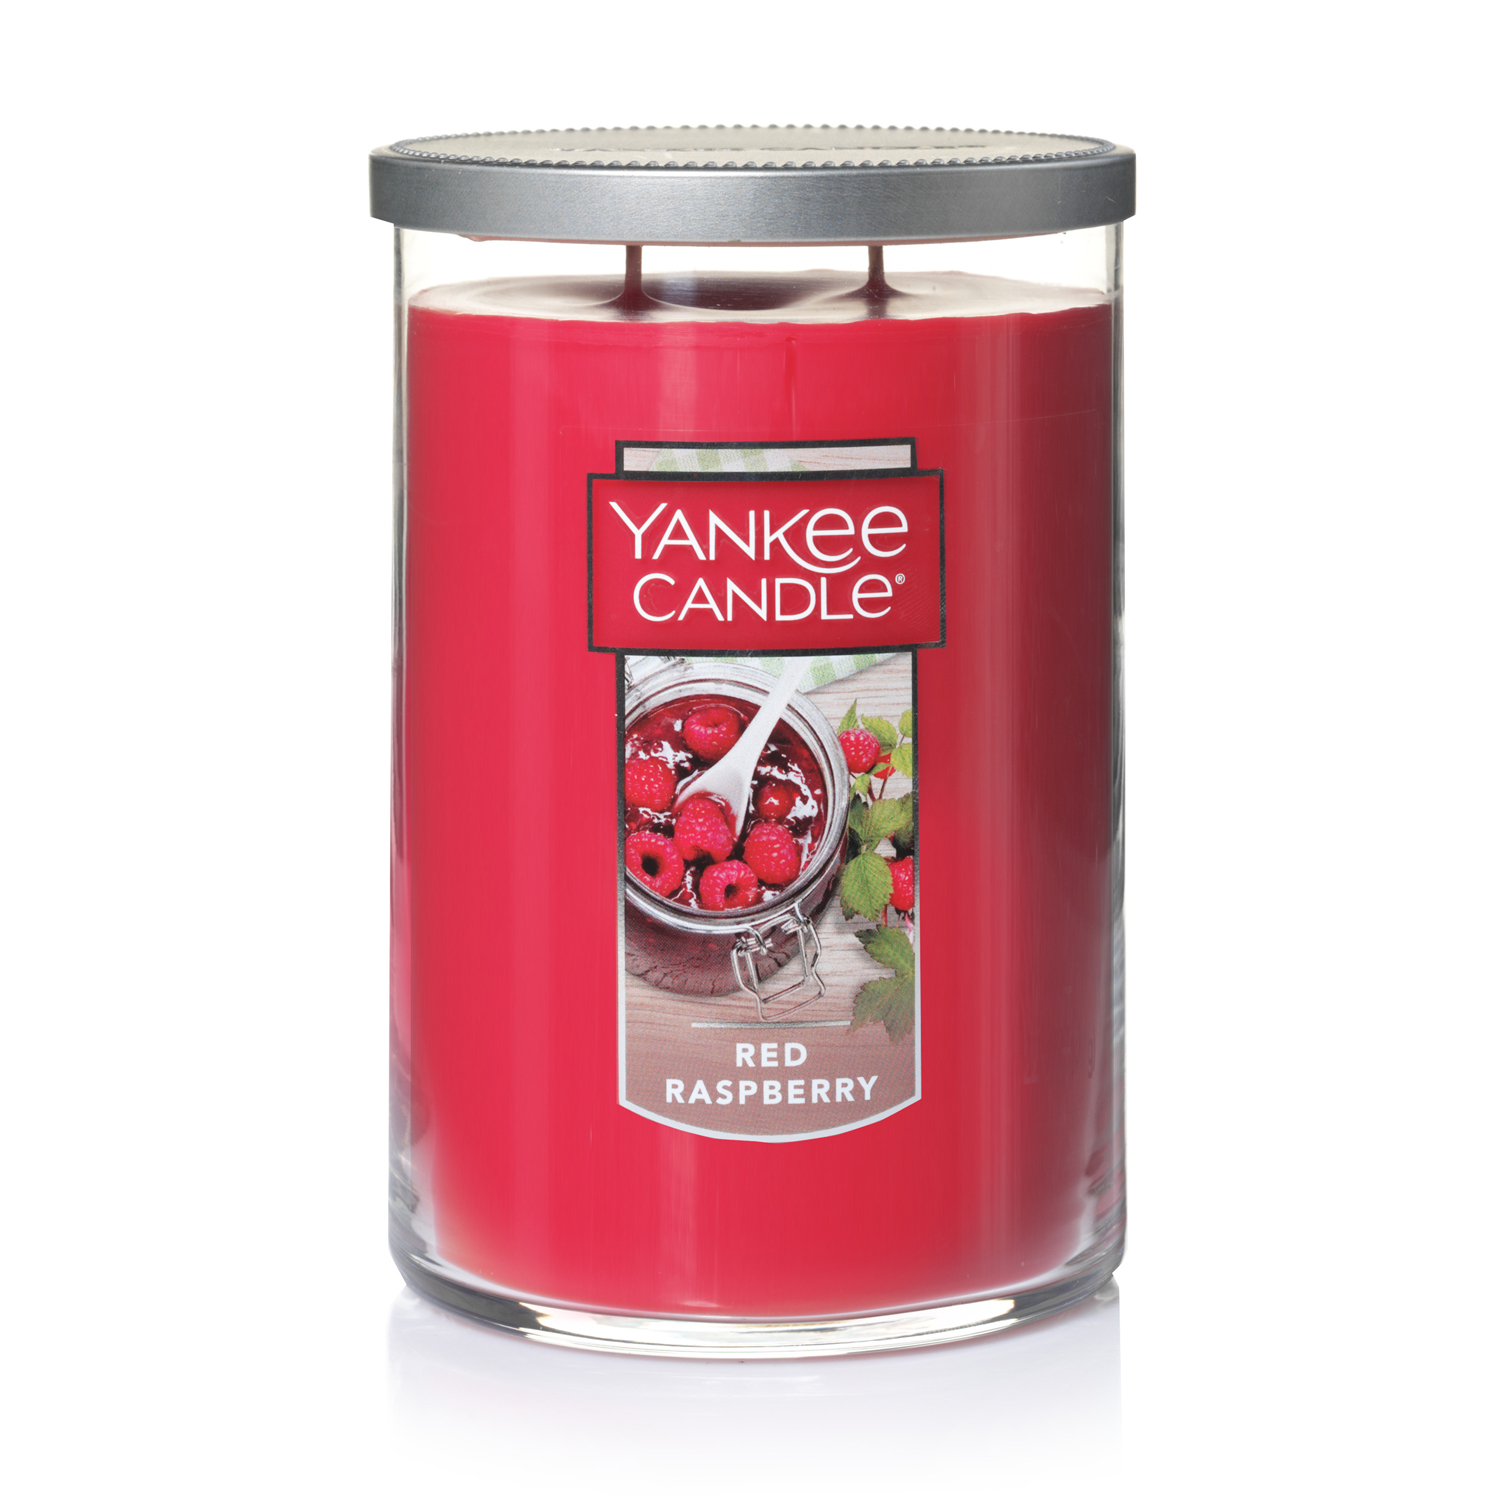 Yankee Candle Large 2-Wick Tumbler Candle, Red Raspberry